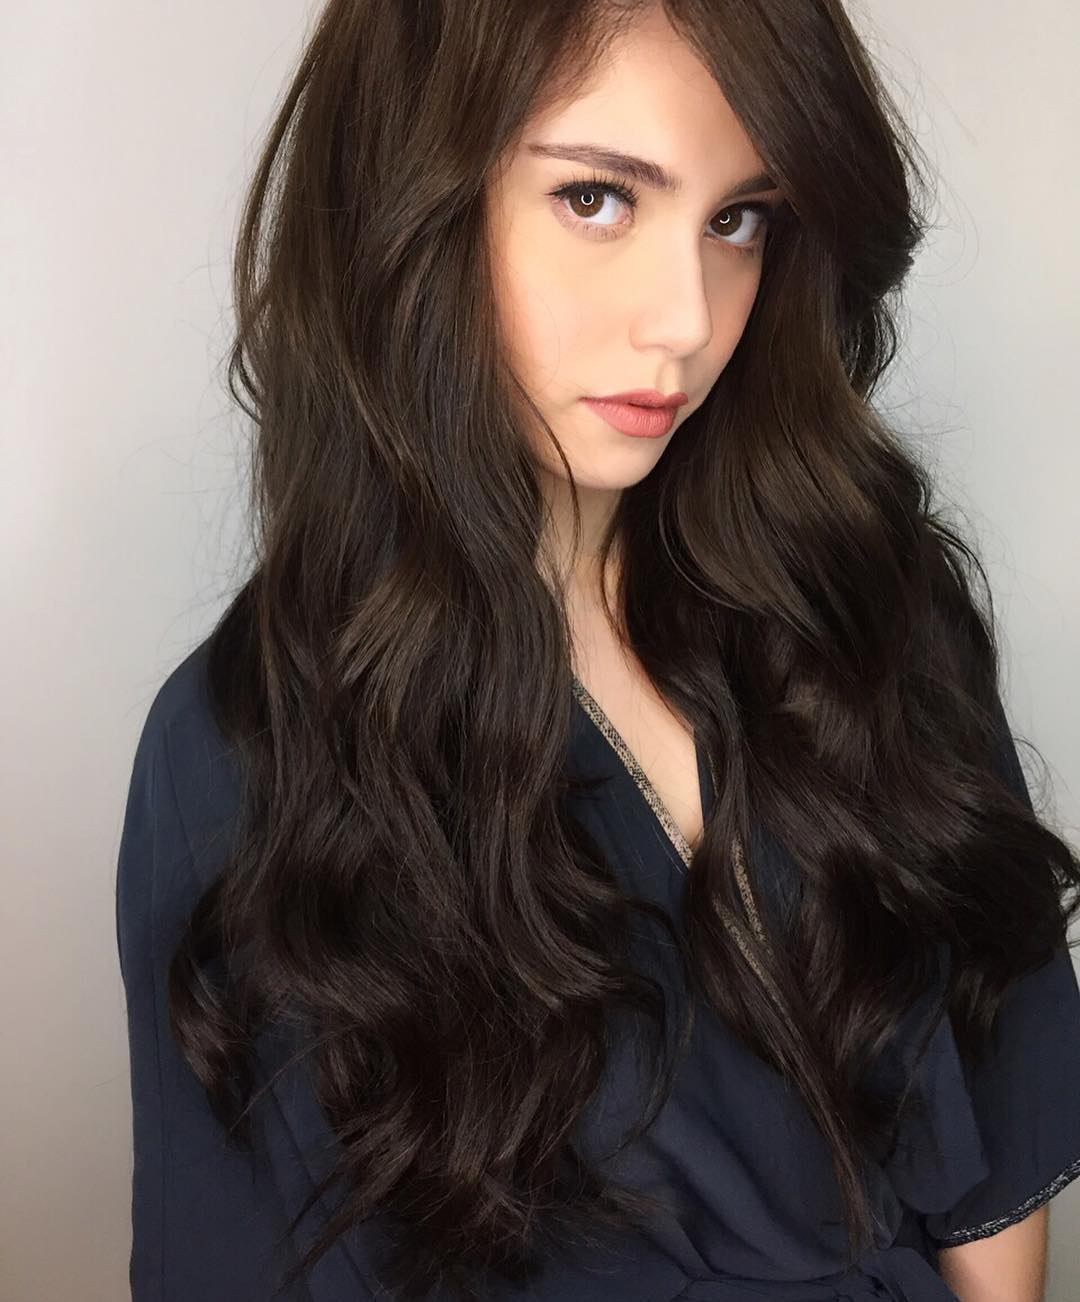 134 photos of jessy mendiola that proved she 39 s the fairest for Jessy mendiola